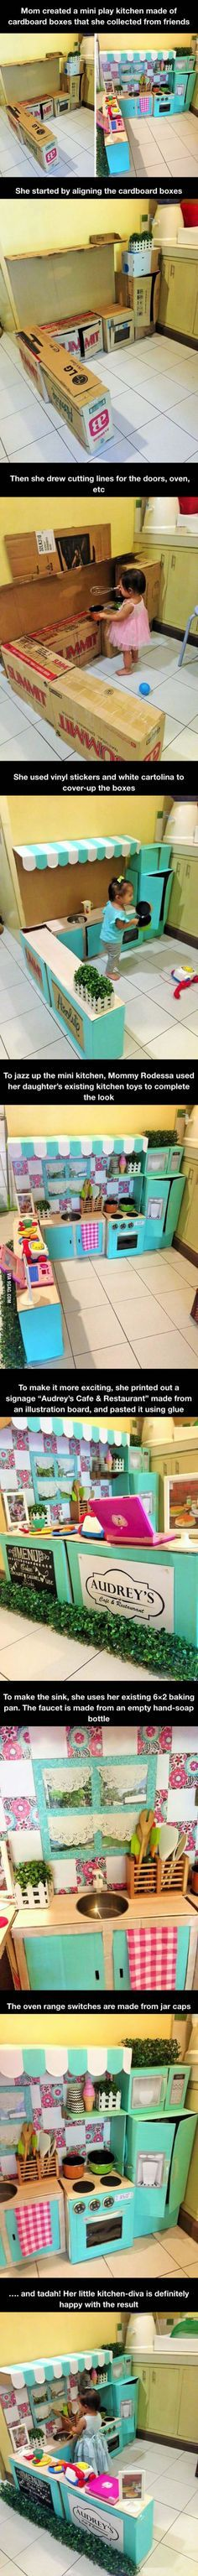 This Mom Created A Mini Play Kitchen Made Of Cardboard Boxes For Her Toddler